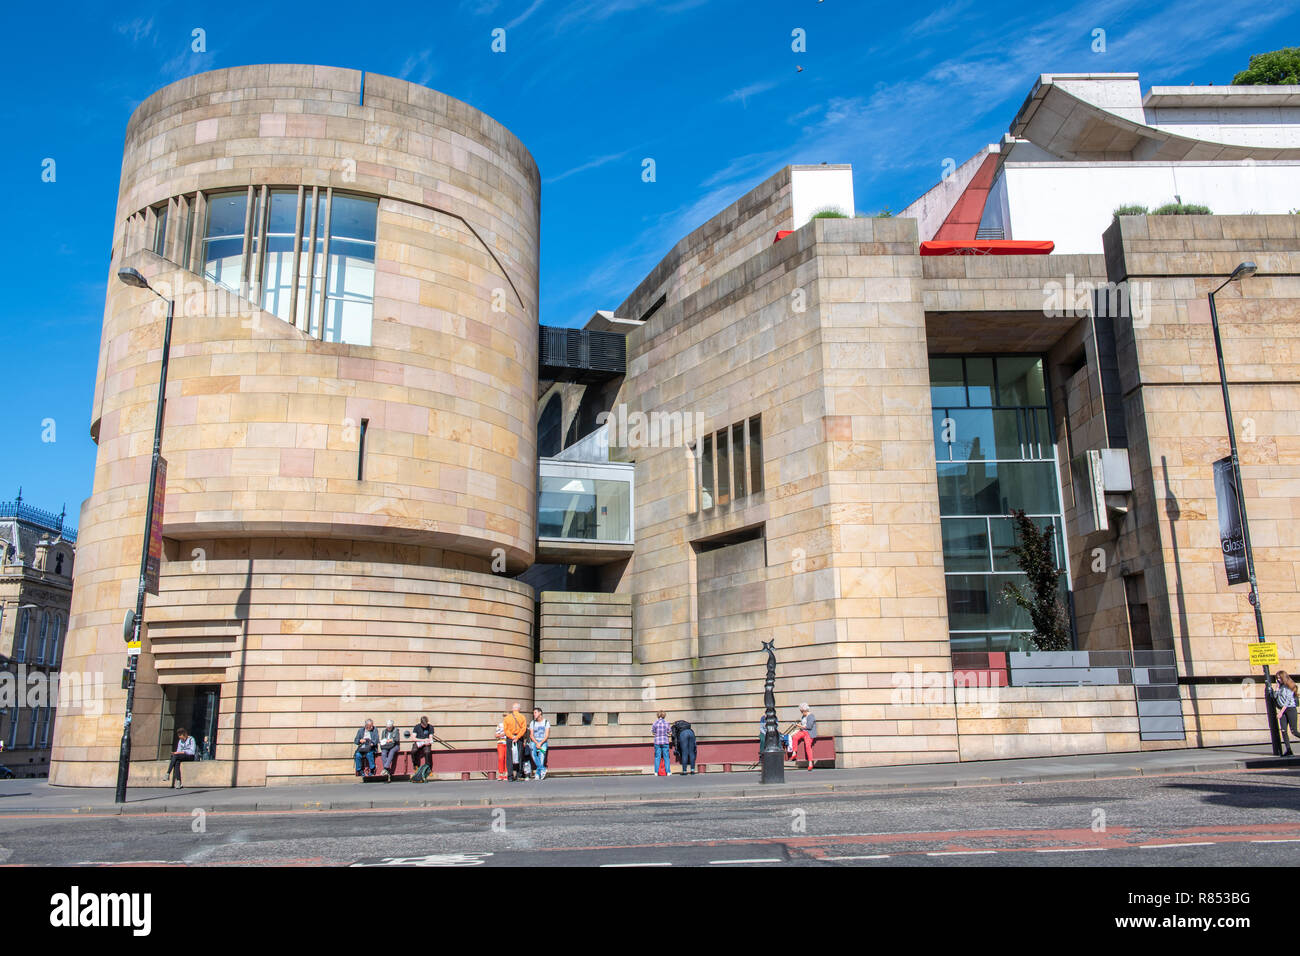 The National Museum of Scotland stands out for its unique romanesque revival architecture in the center of Edinburgh, Scotland, UK. - Stock Image